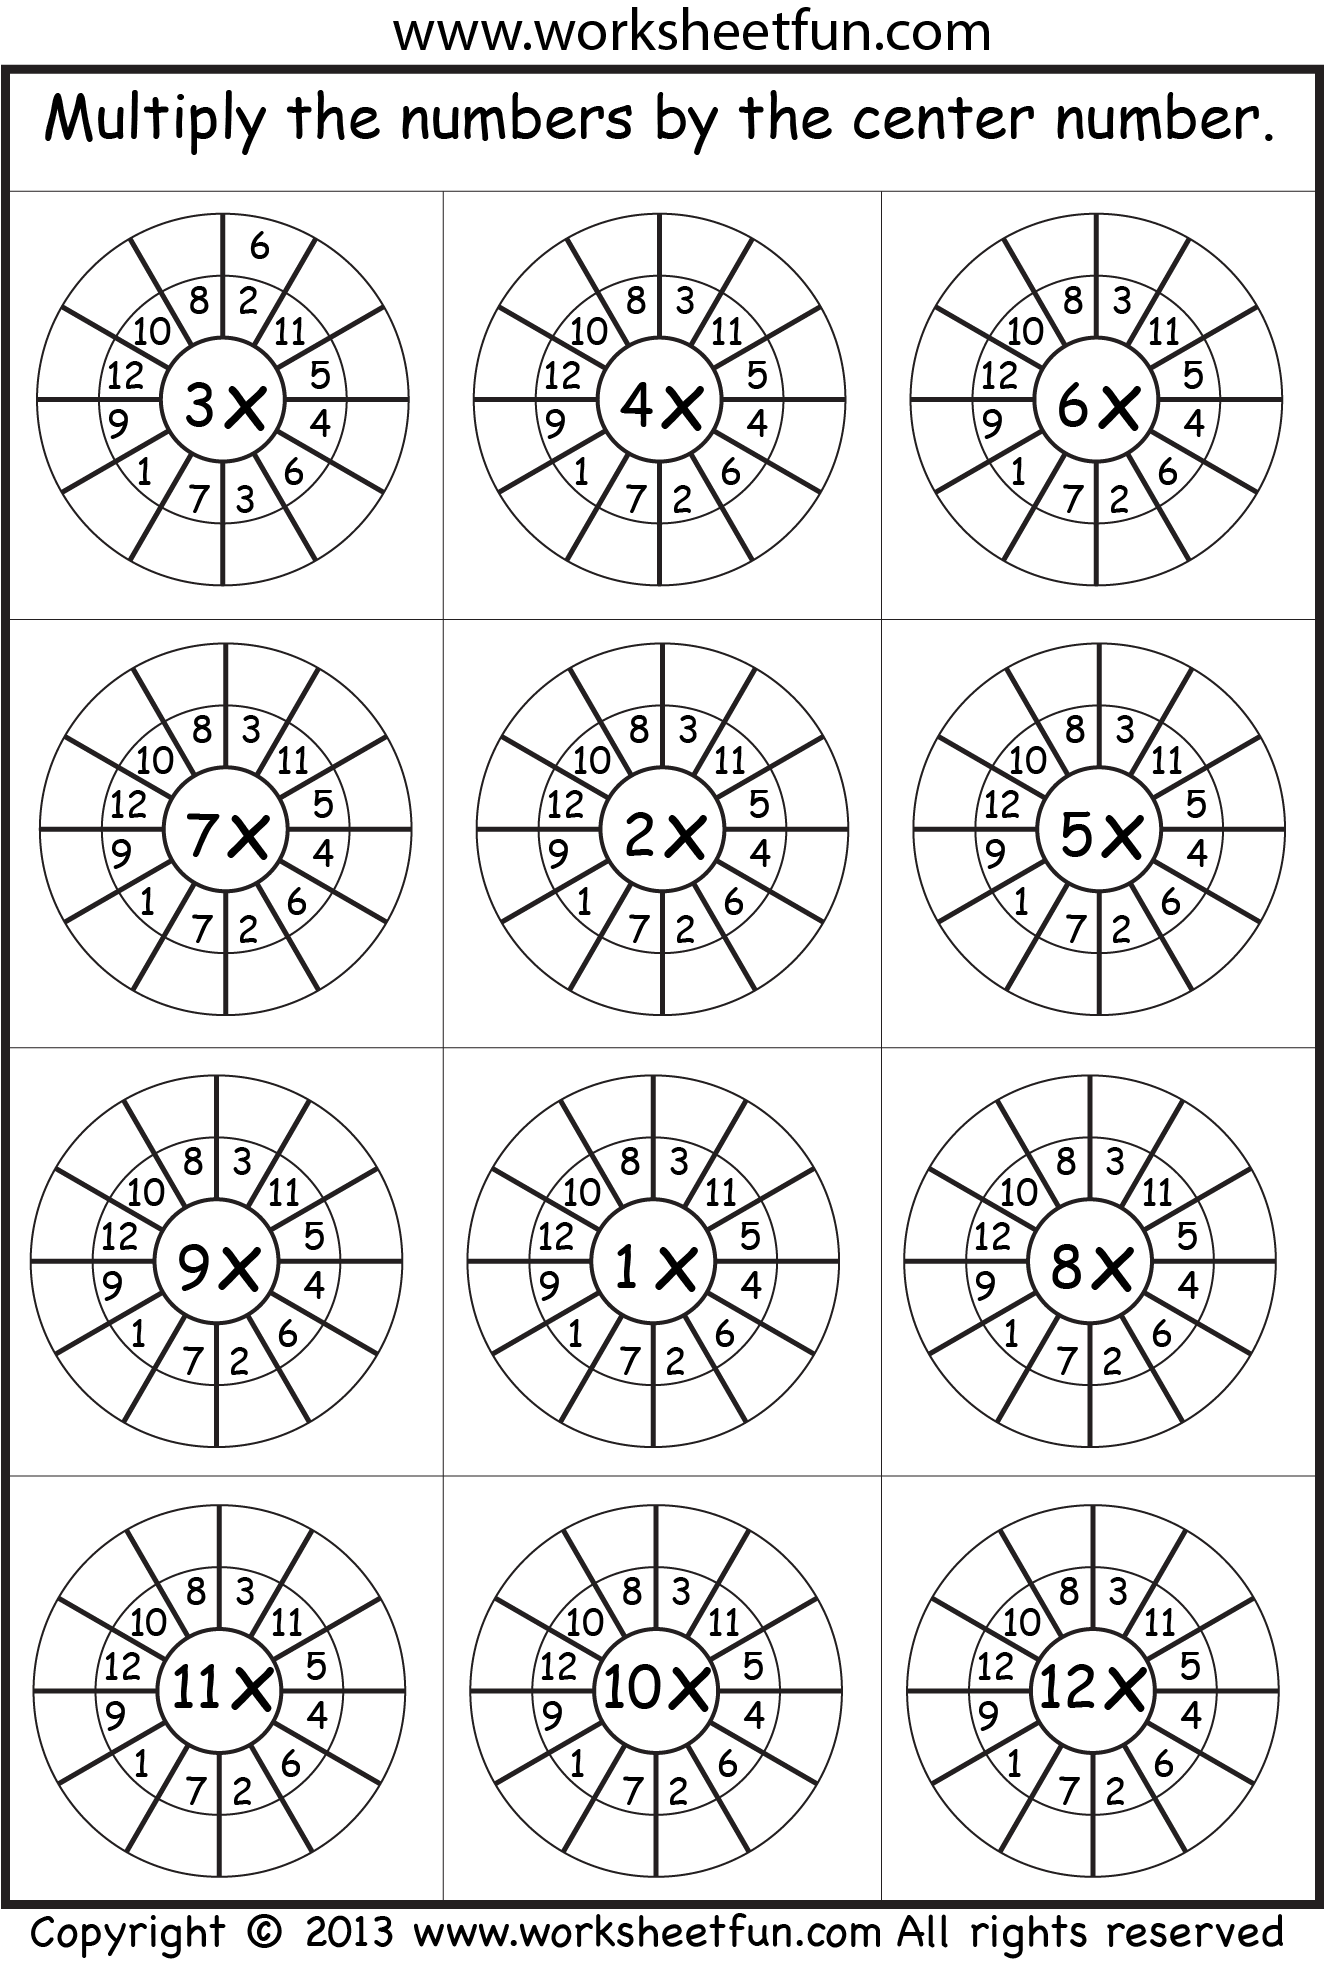 worksheet Fun Multiplication Worksheet 17 best images about math multiplication on pinterest anchor charts quiz and skip counting